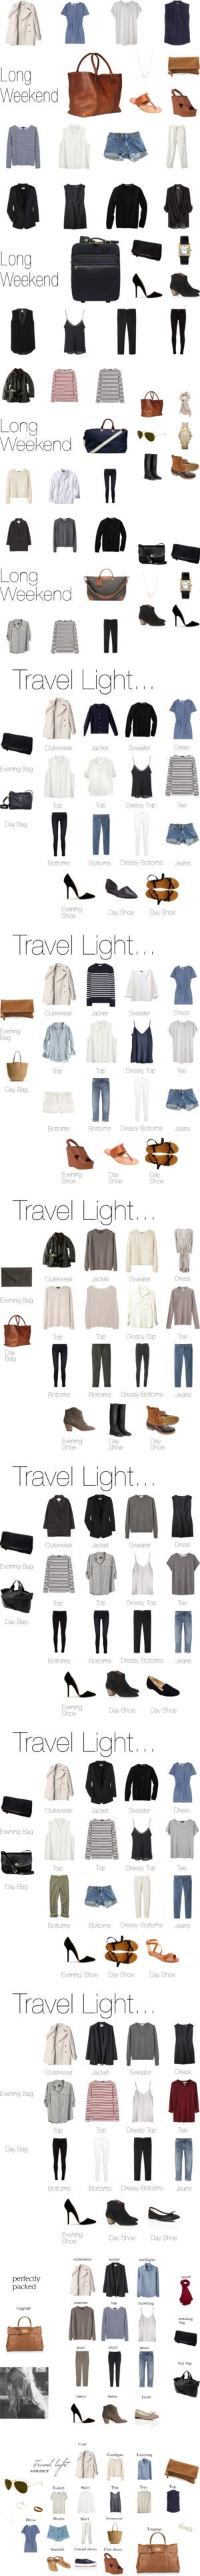 """Packing Light"" by keelyhenesey ❤ liked on Polyvore"